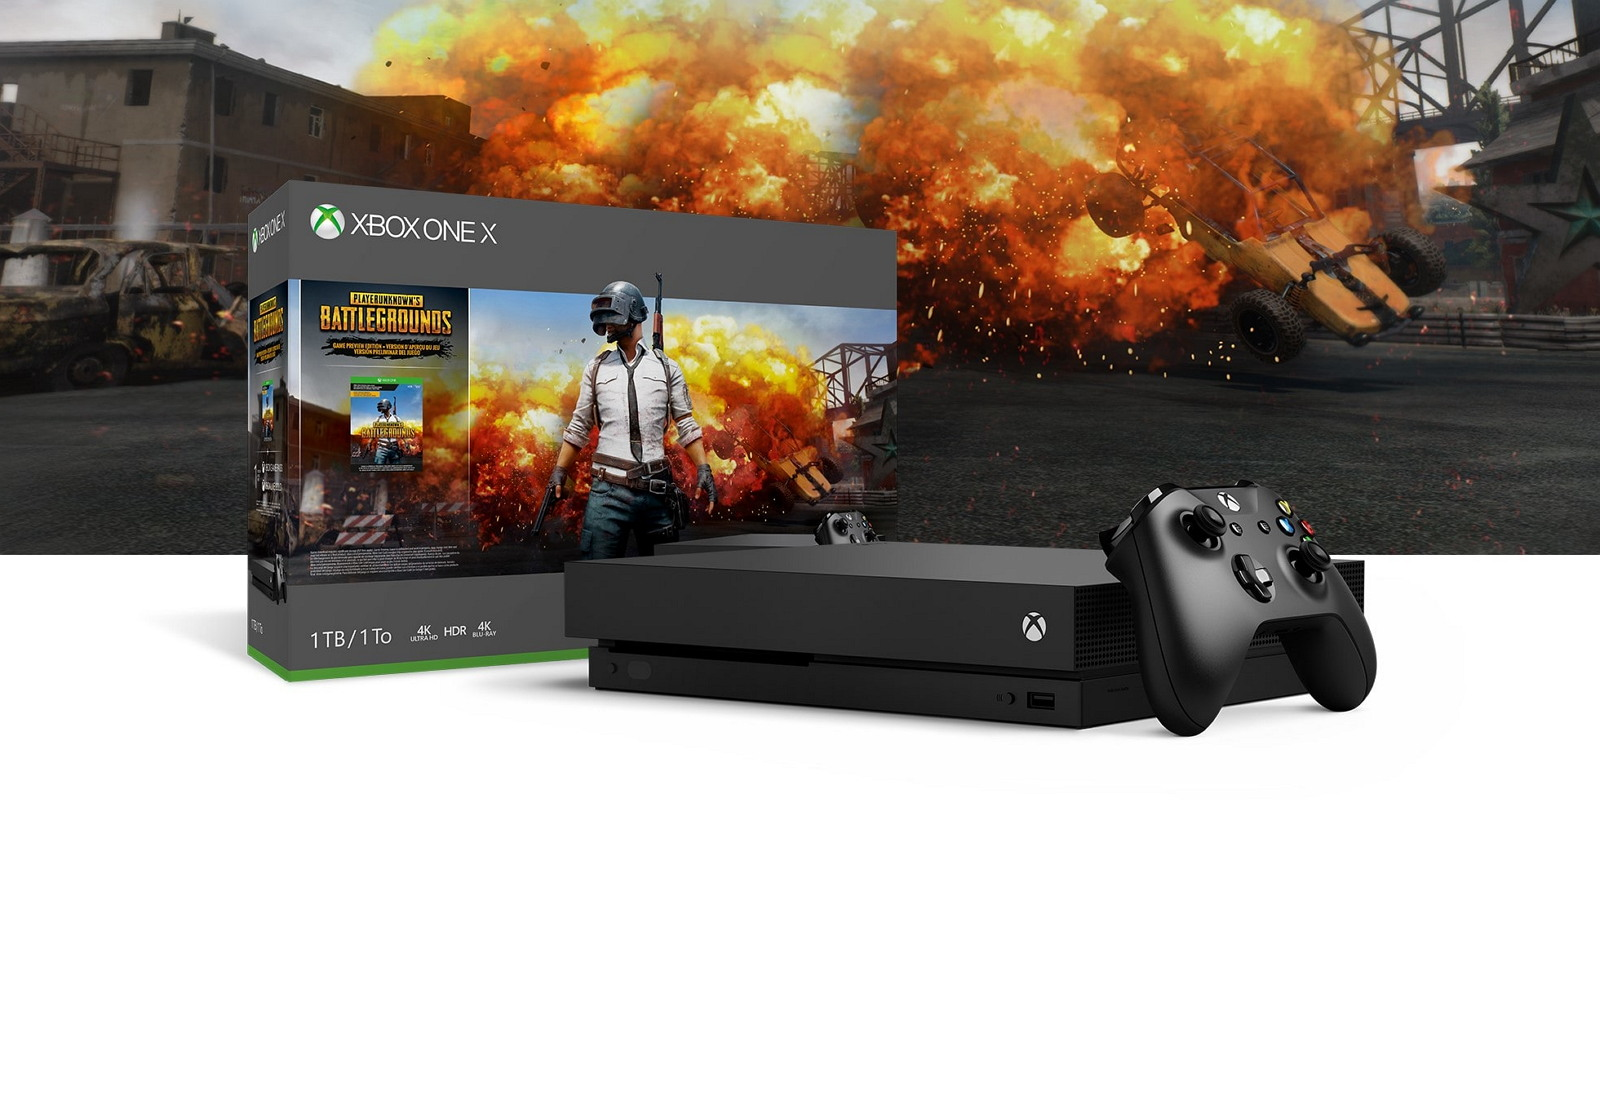 Xbox One X PUBG bundle